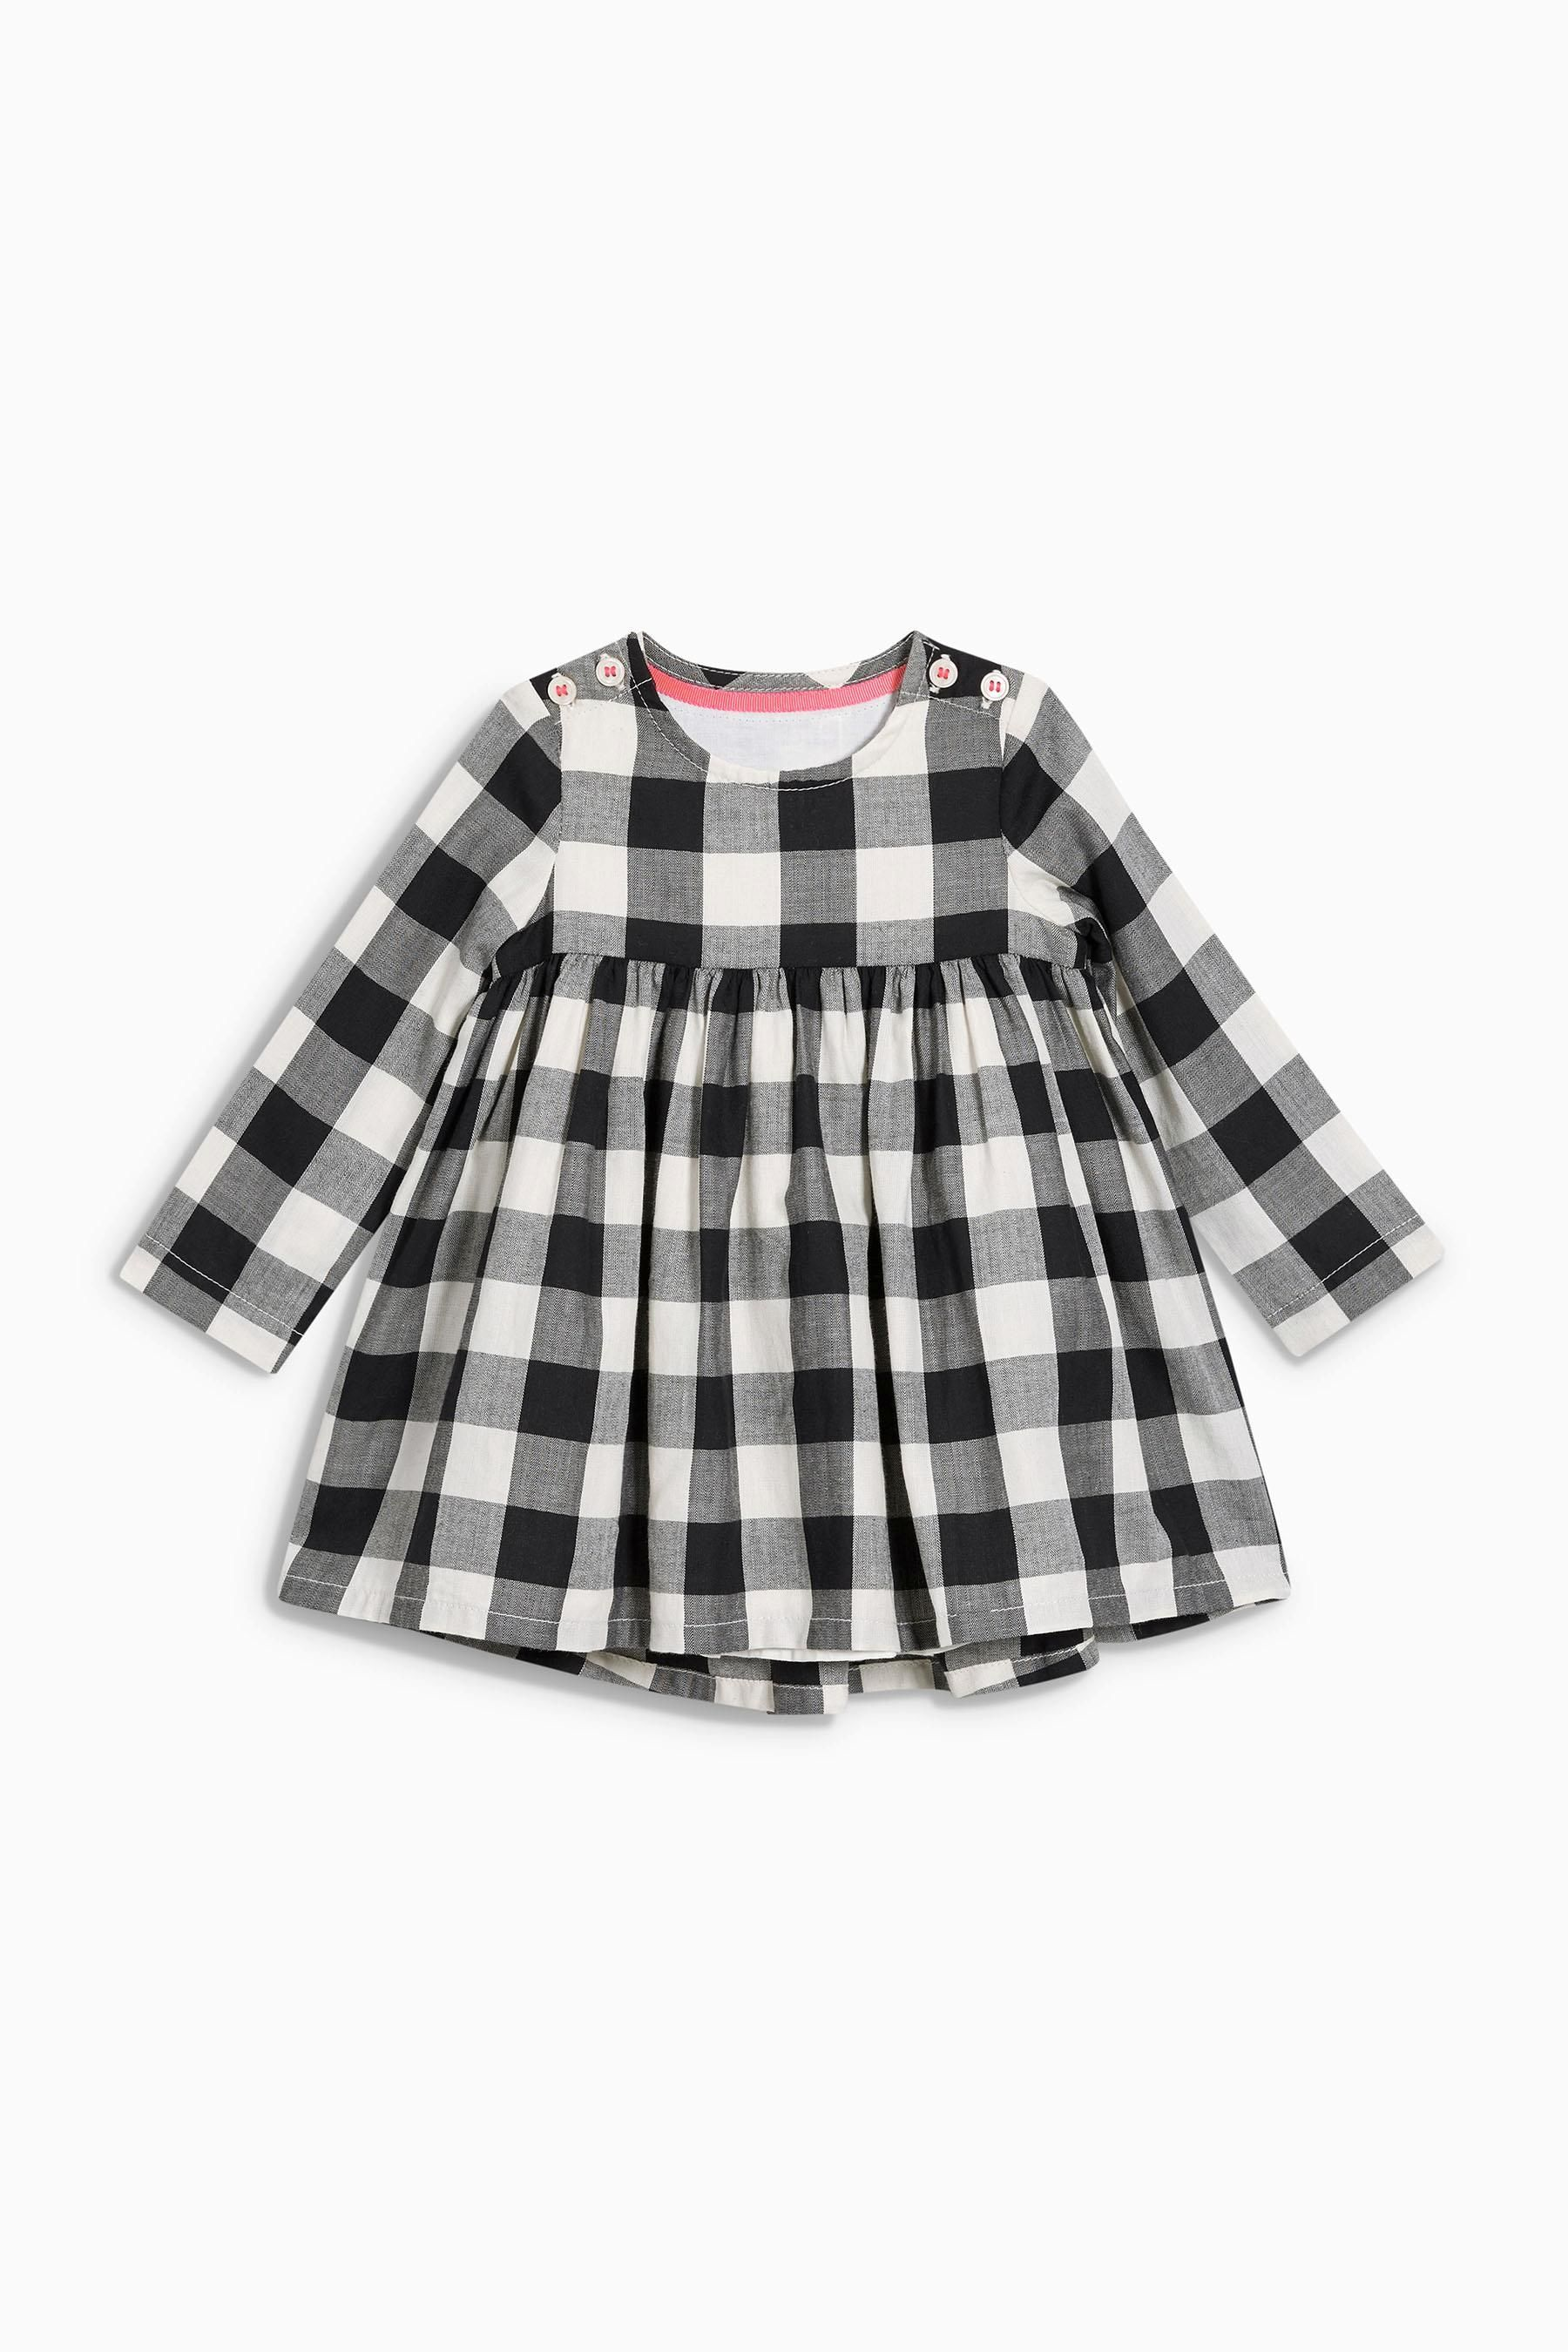 Black and white baby mobile designed and made in australia by tina - Black White Gingham Baby Dress Next Usa